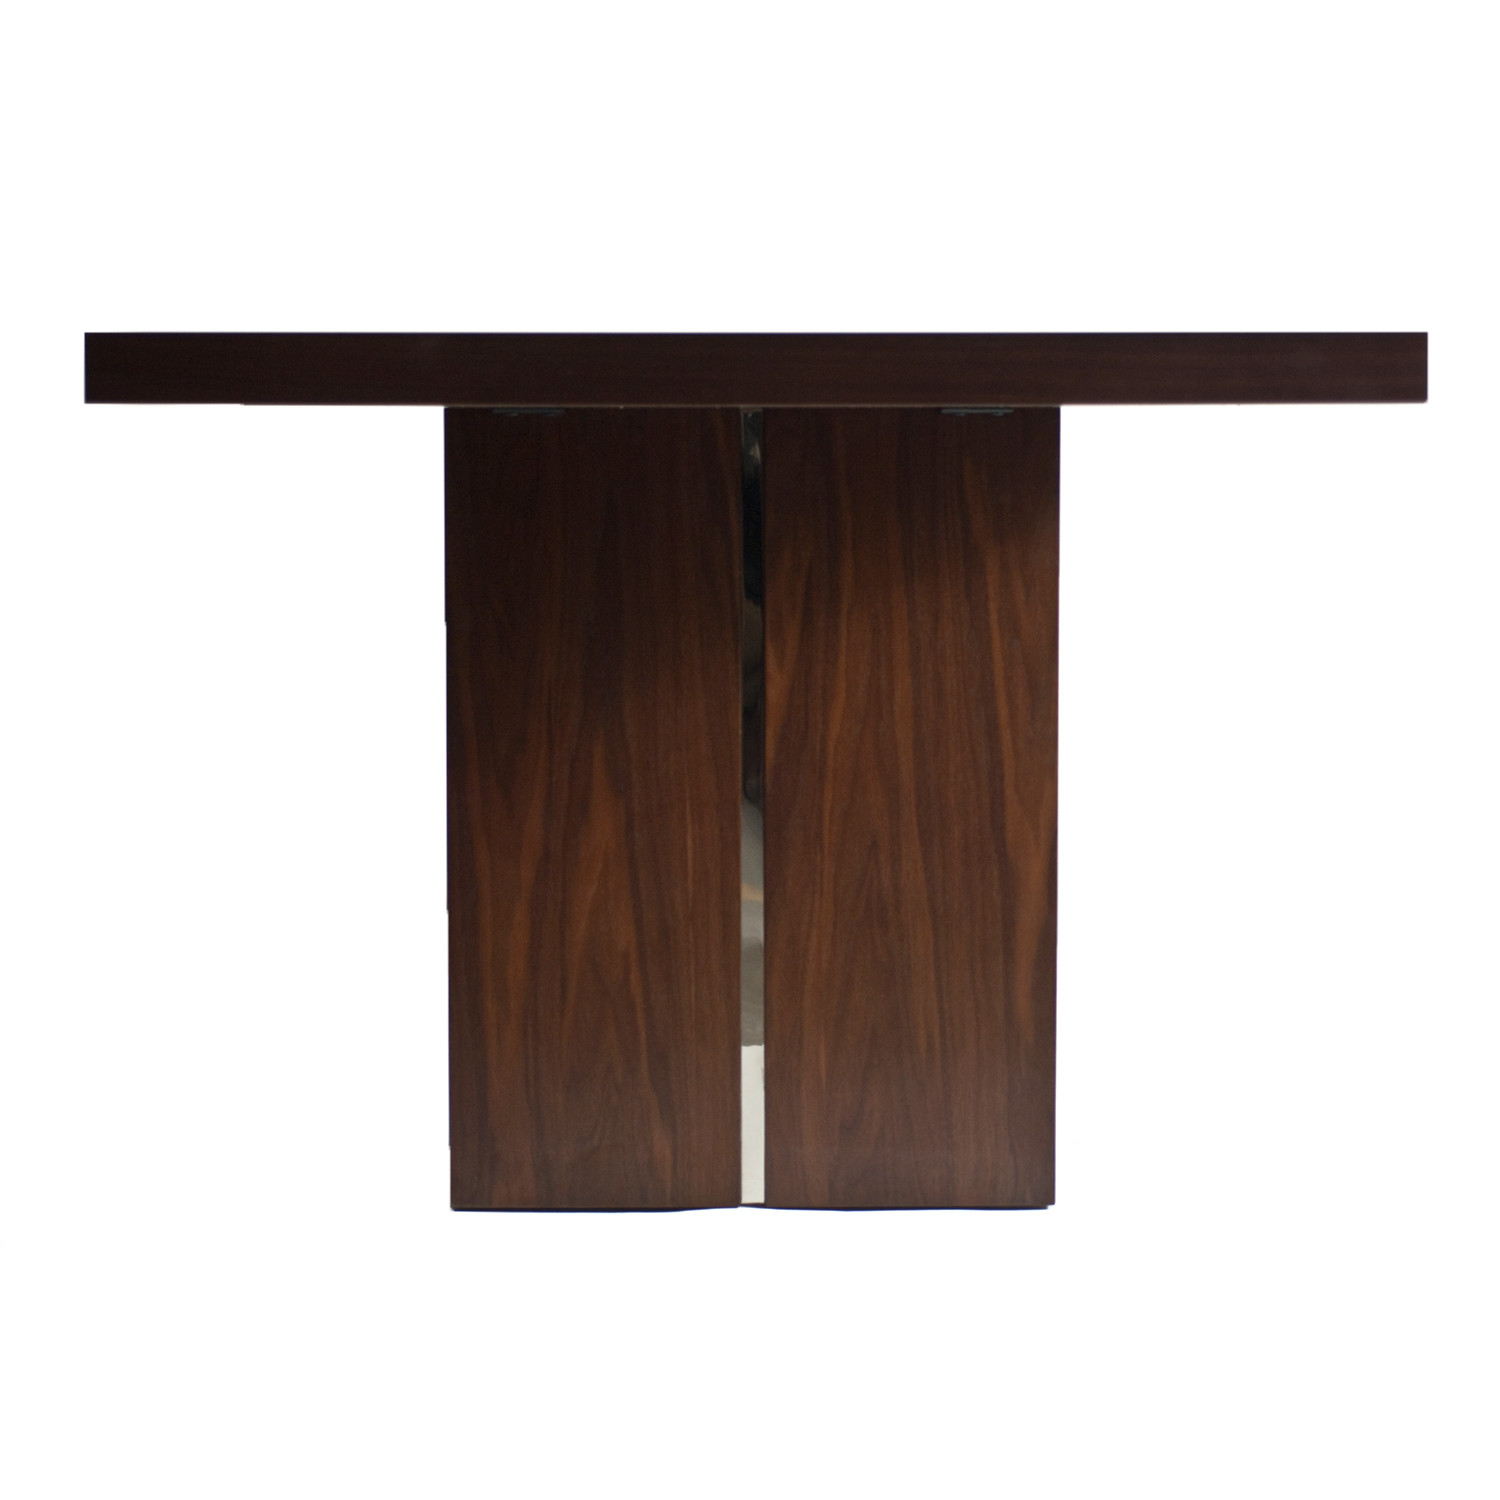 Argos Dining Table Urbia Touch of Modern : 997bce0674baab6b722a42423eed7e9elarge from www.touchofmodern.com size 1500 x 1500 jpeg 121kB